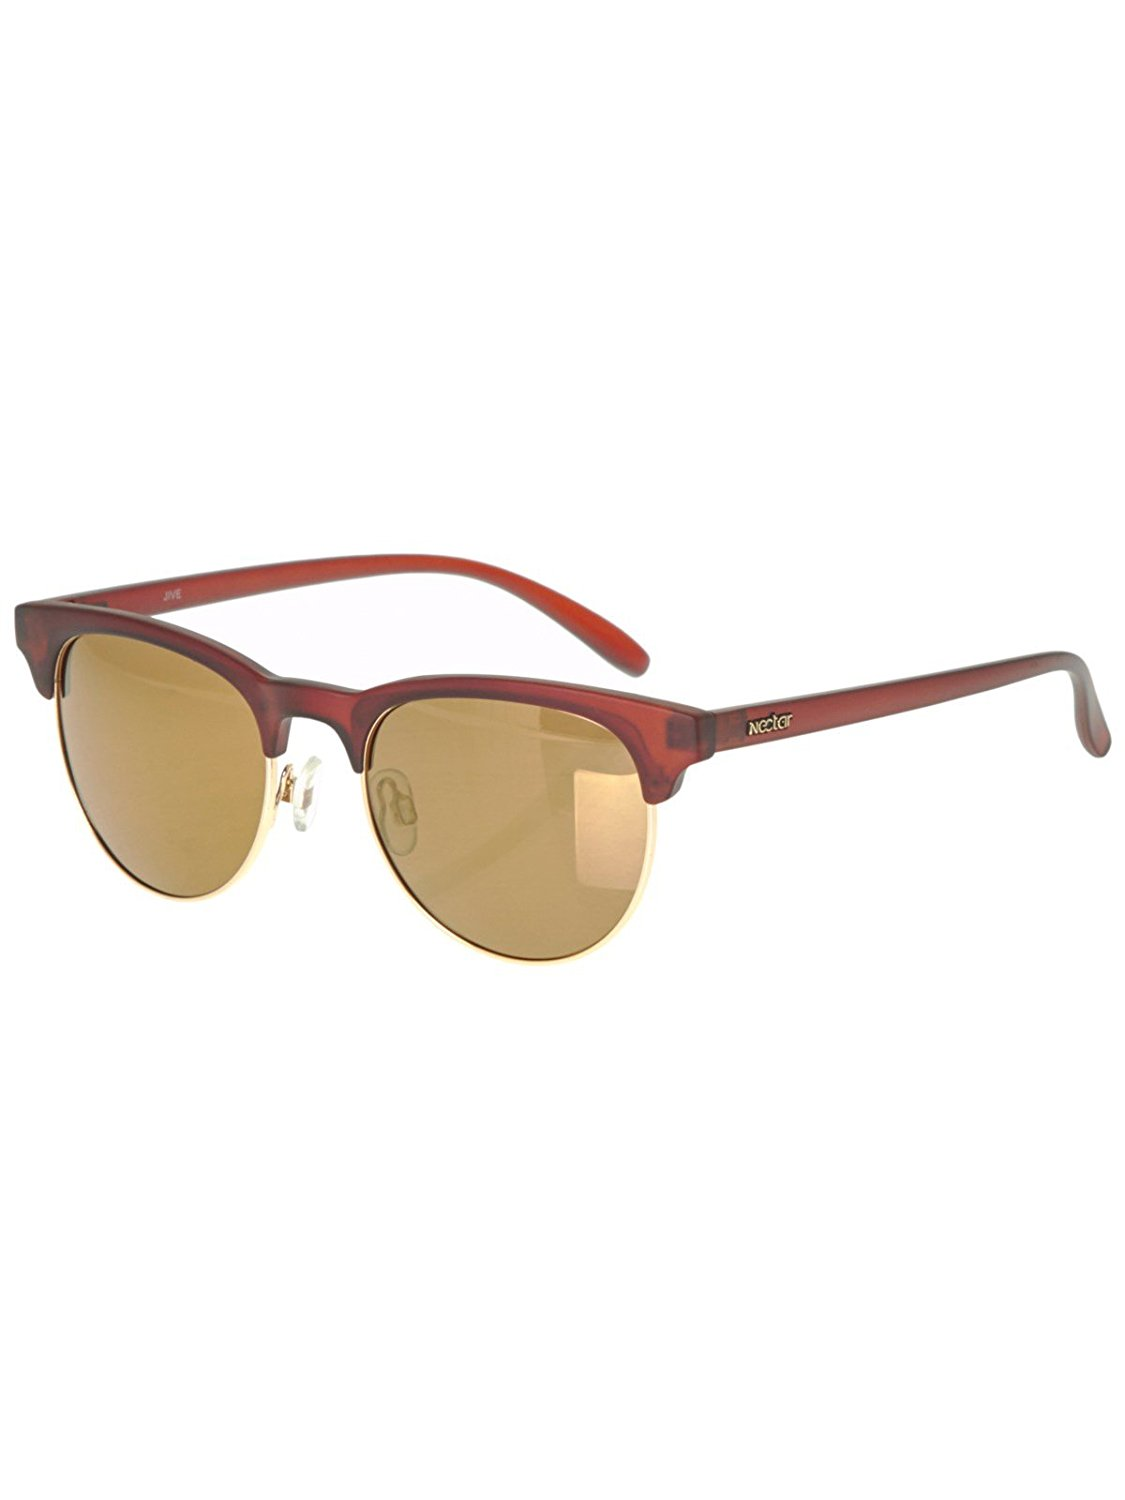 9733ede14e1 Get Quotations · Nectar Jive Polarised Sunglasses in Brown   Gold